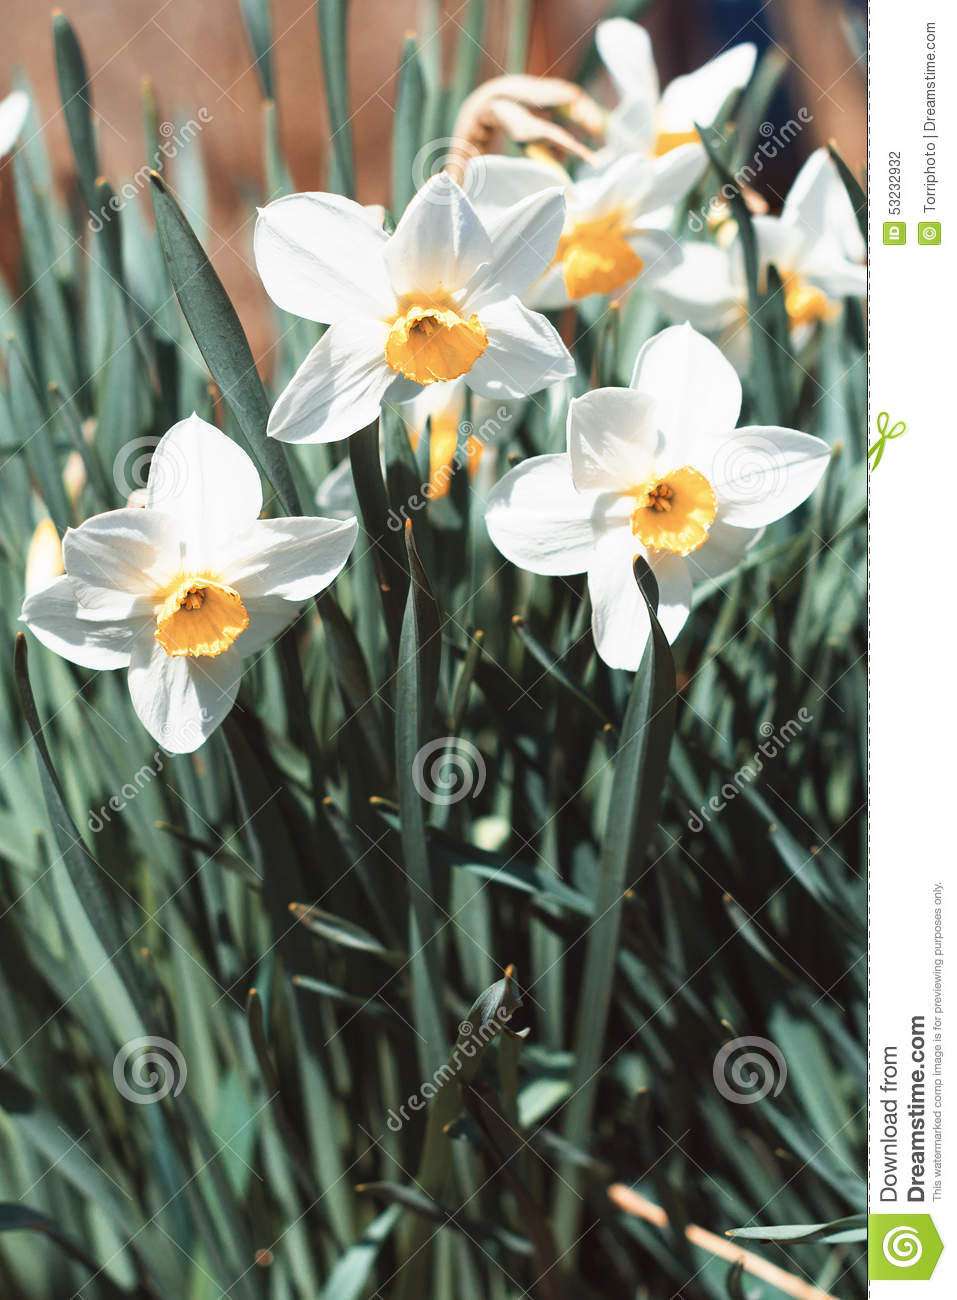 White Daffodils In Spring Stock Photo - Image: 53232932